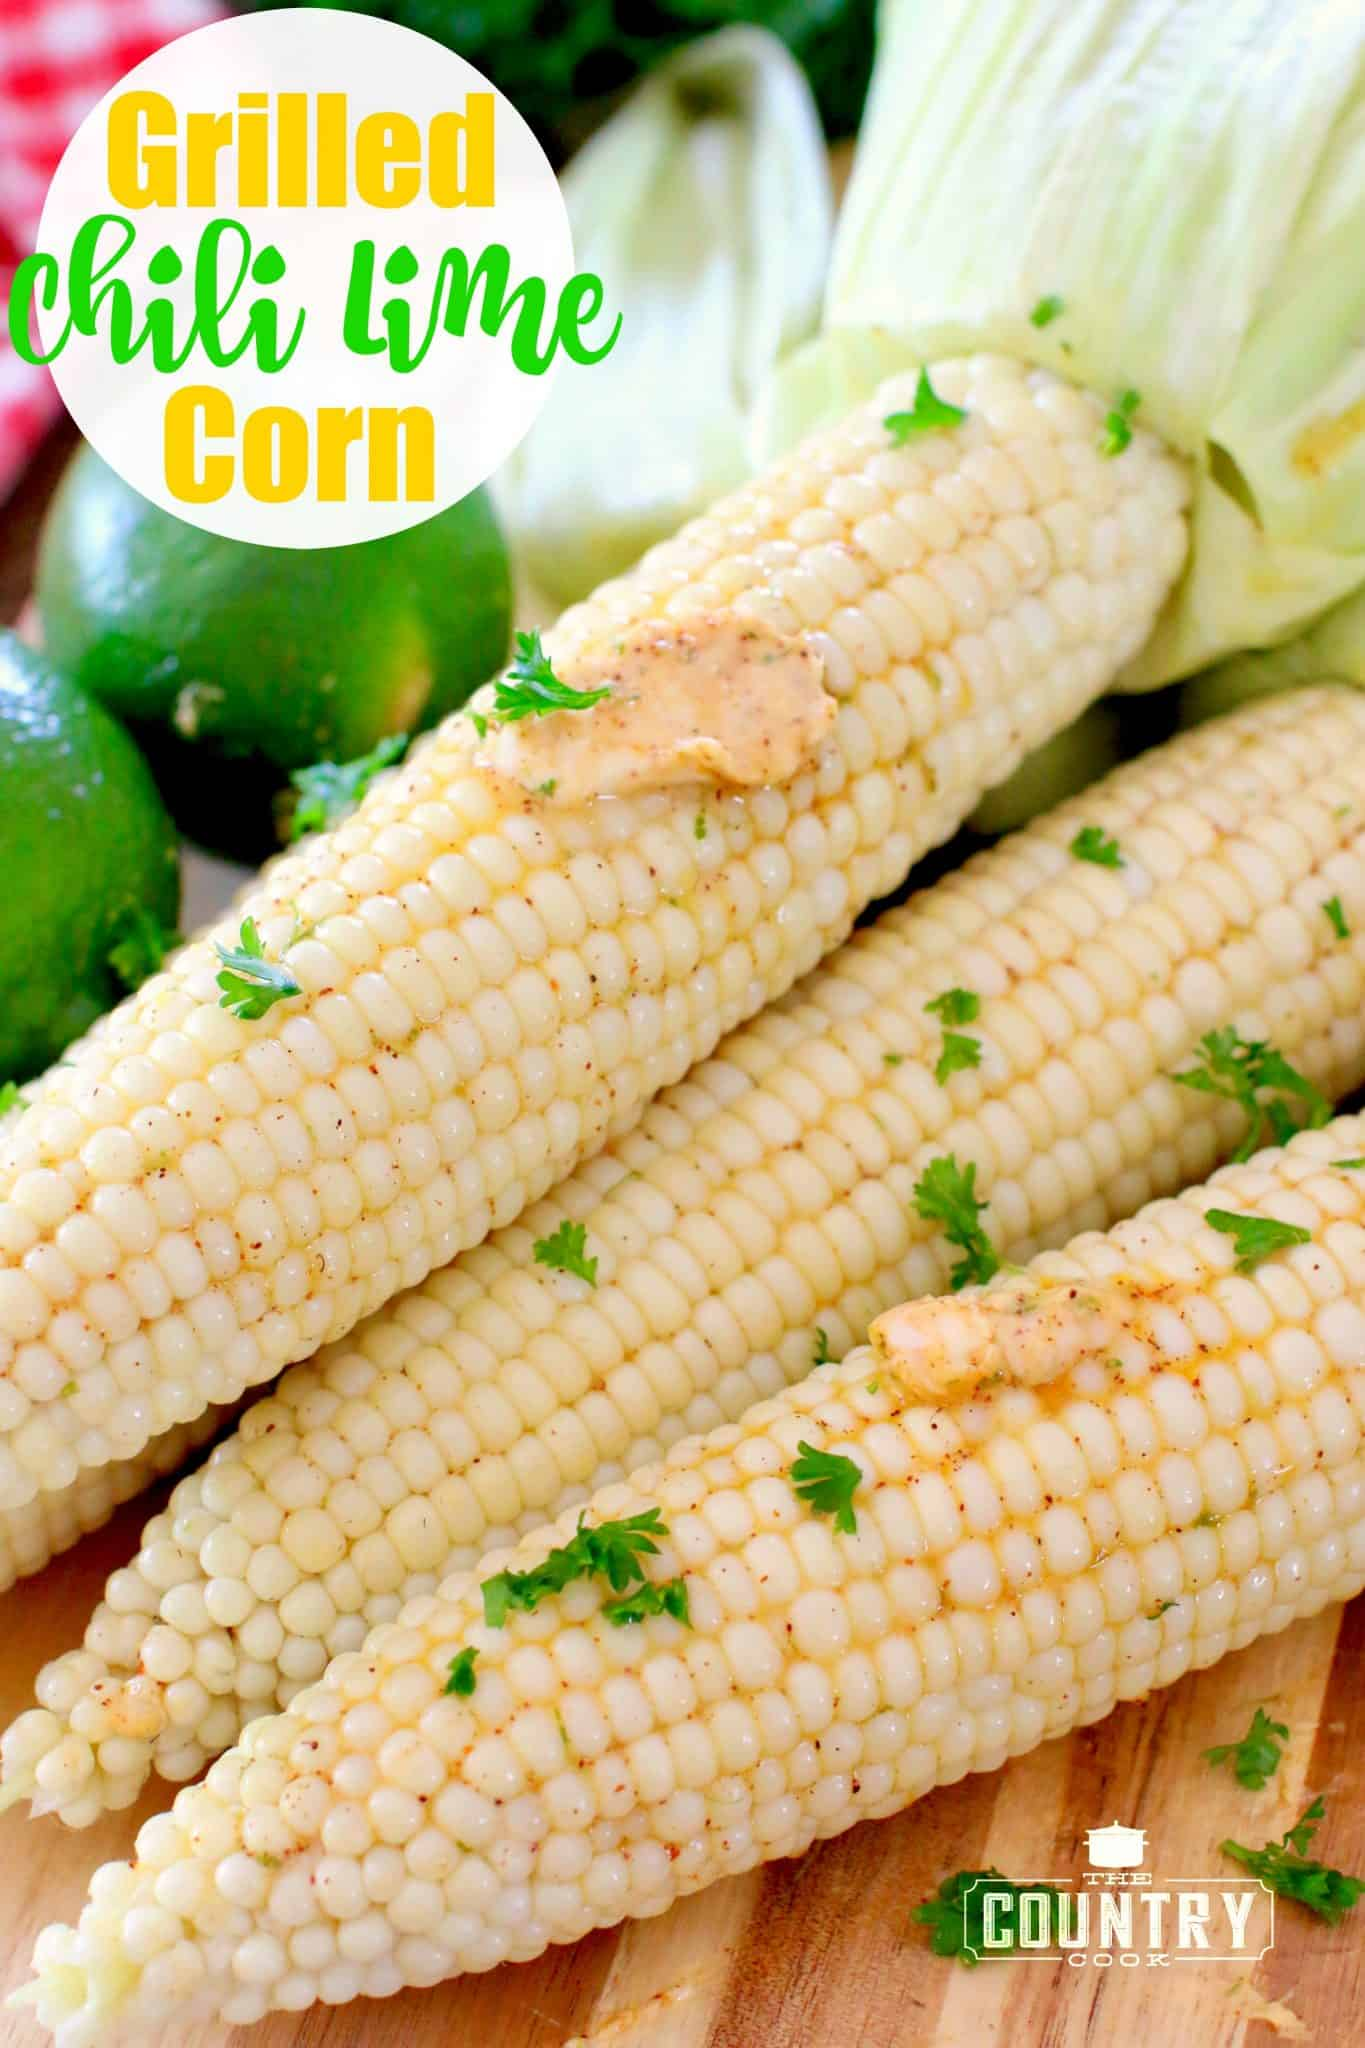 Grilled Chili Lime Corn shown close up with melted butter and chopped fresh parsley sprinkled on top.